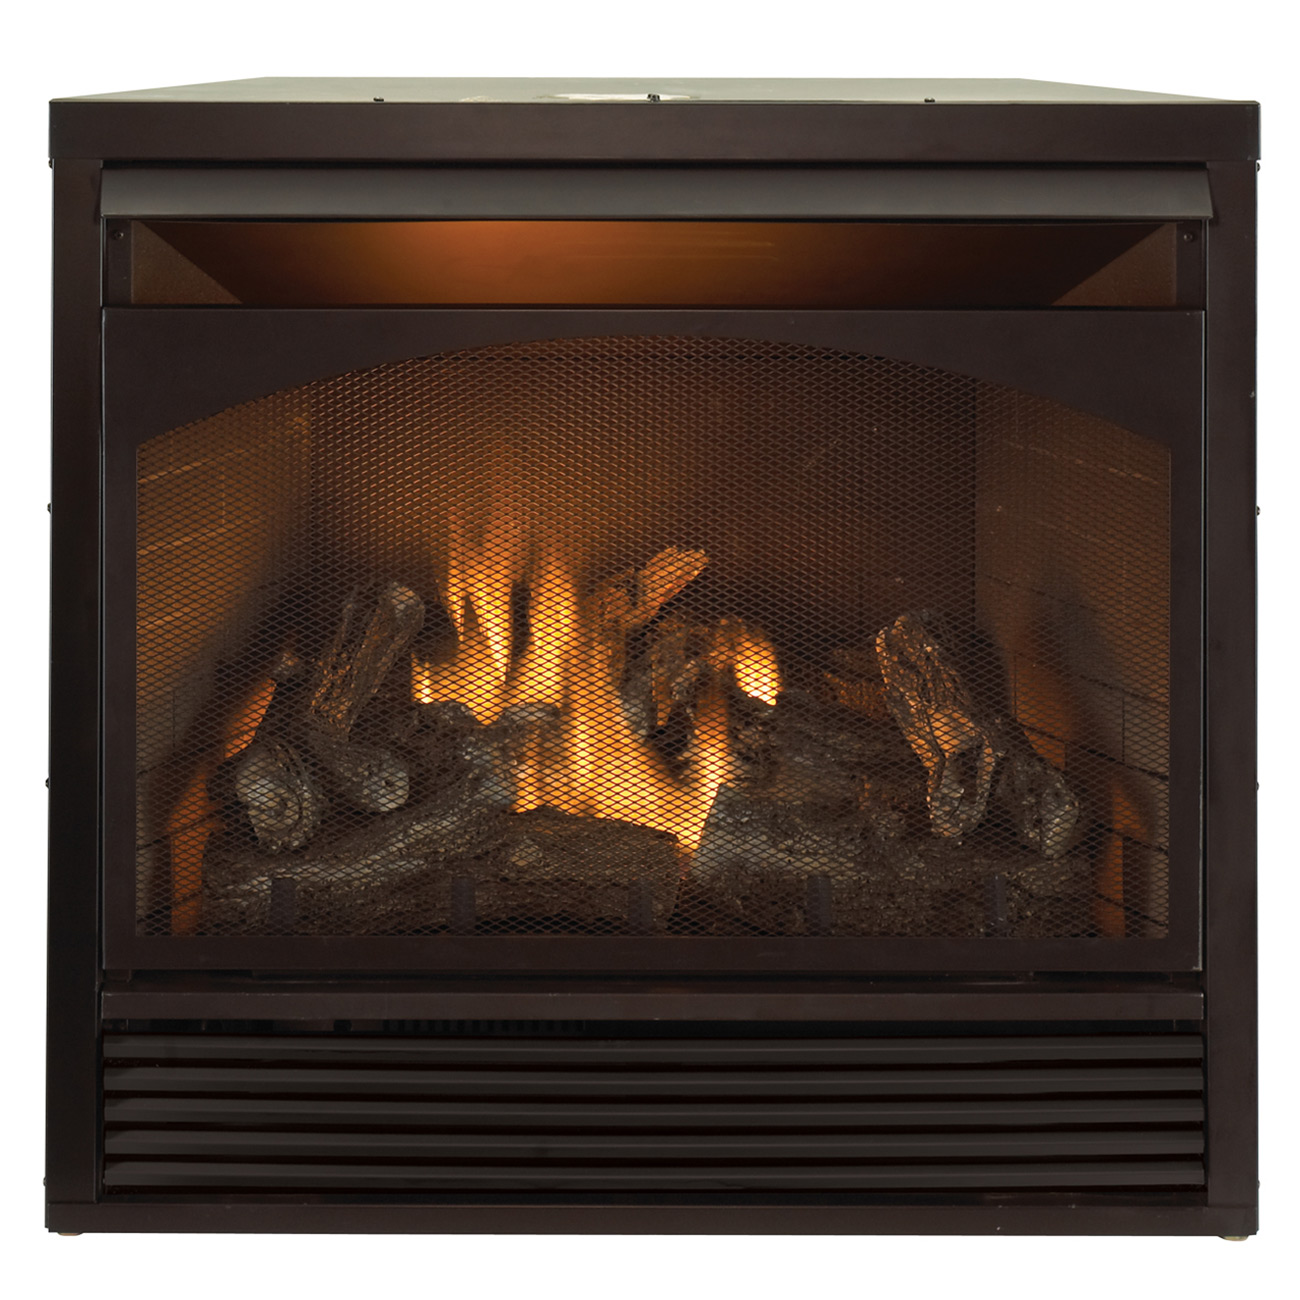 Convert Fireplace To Gas Burning Convert Your Fireplace To Natural Gas With A Fireplace Insert